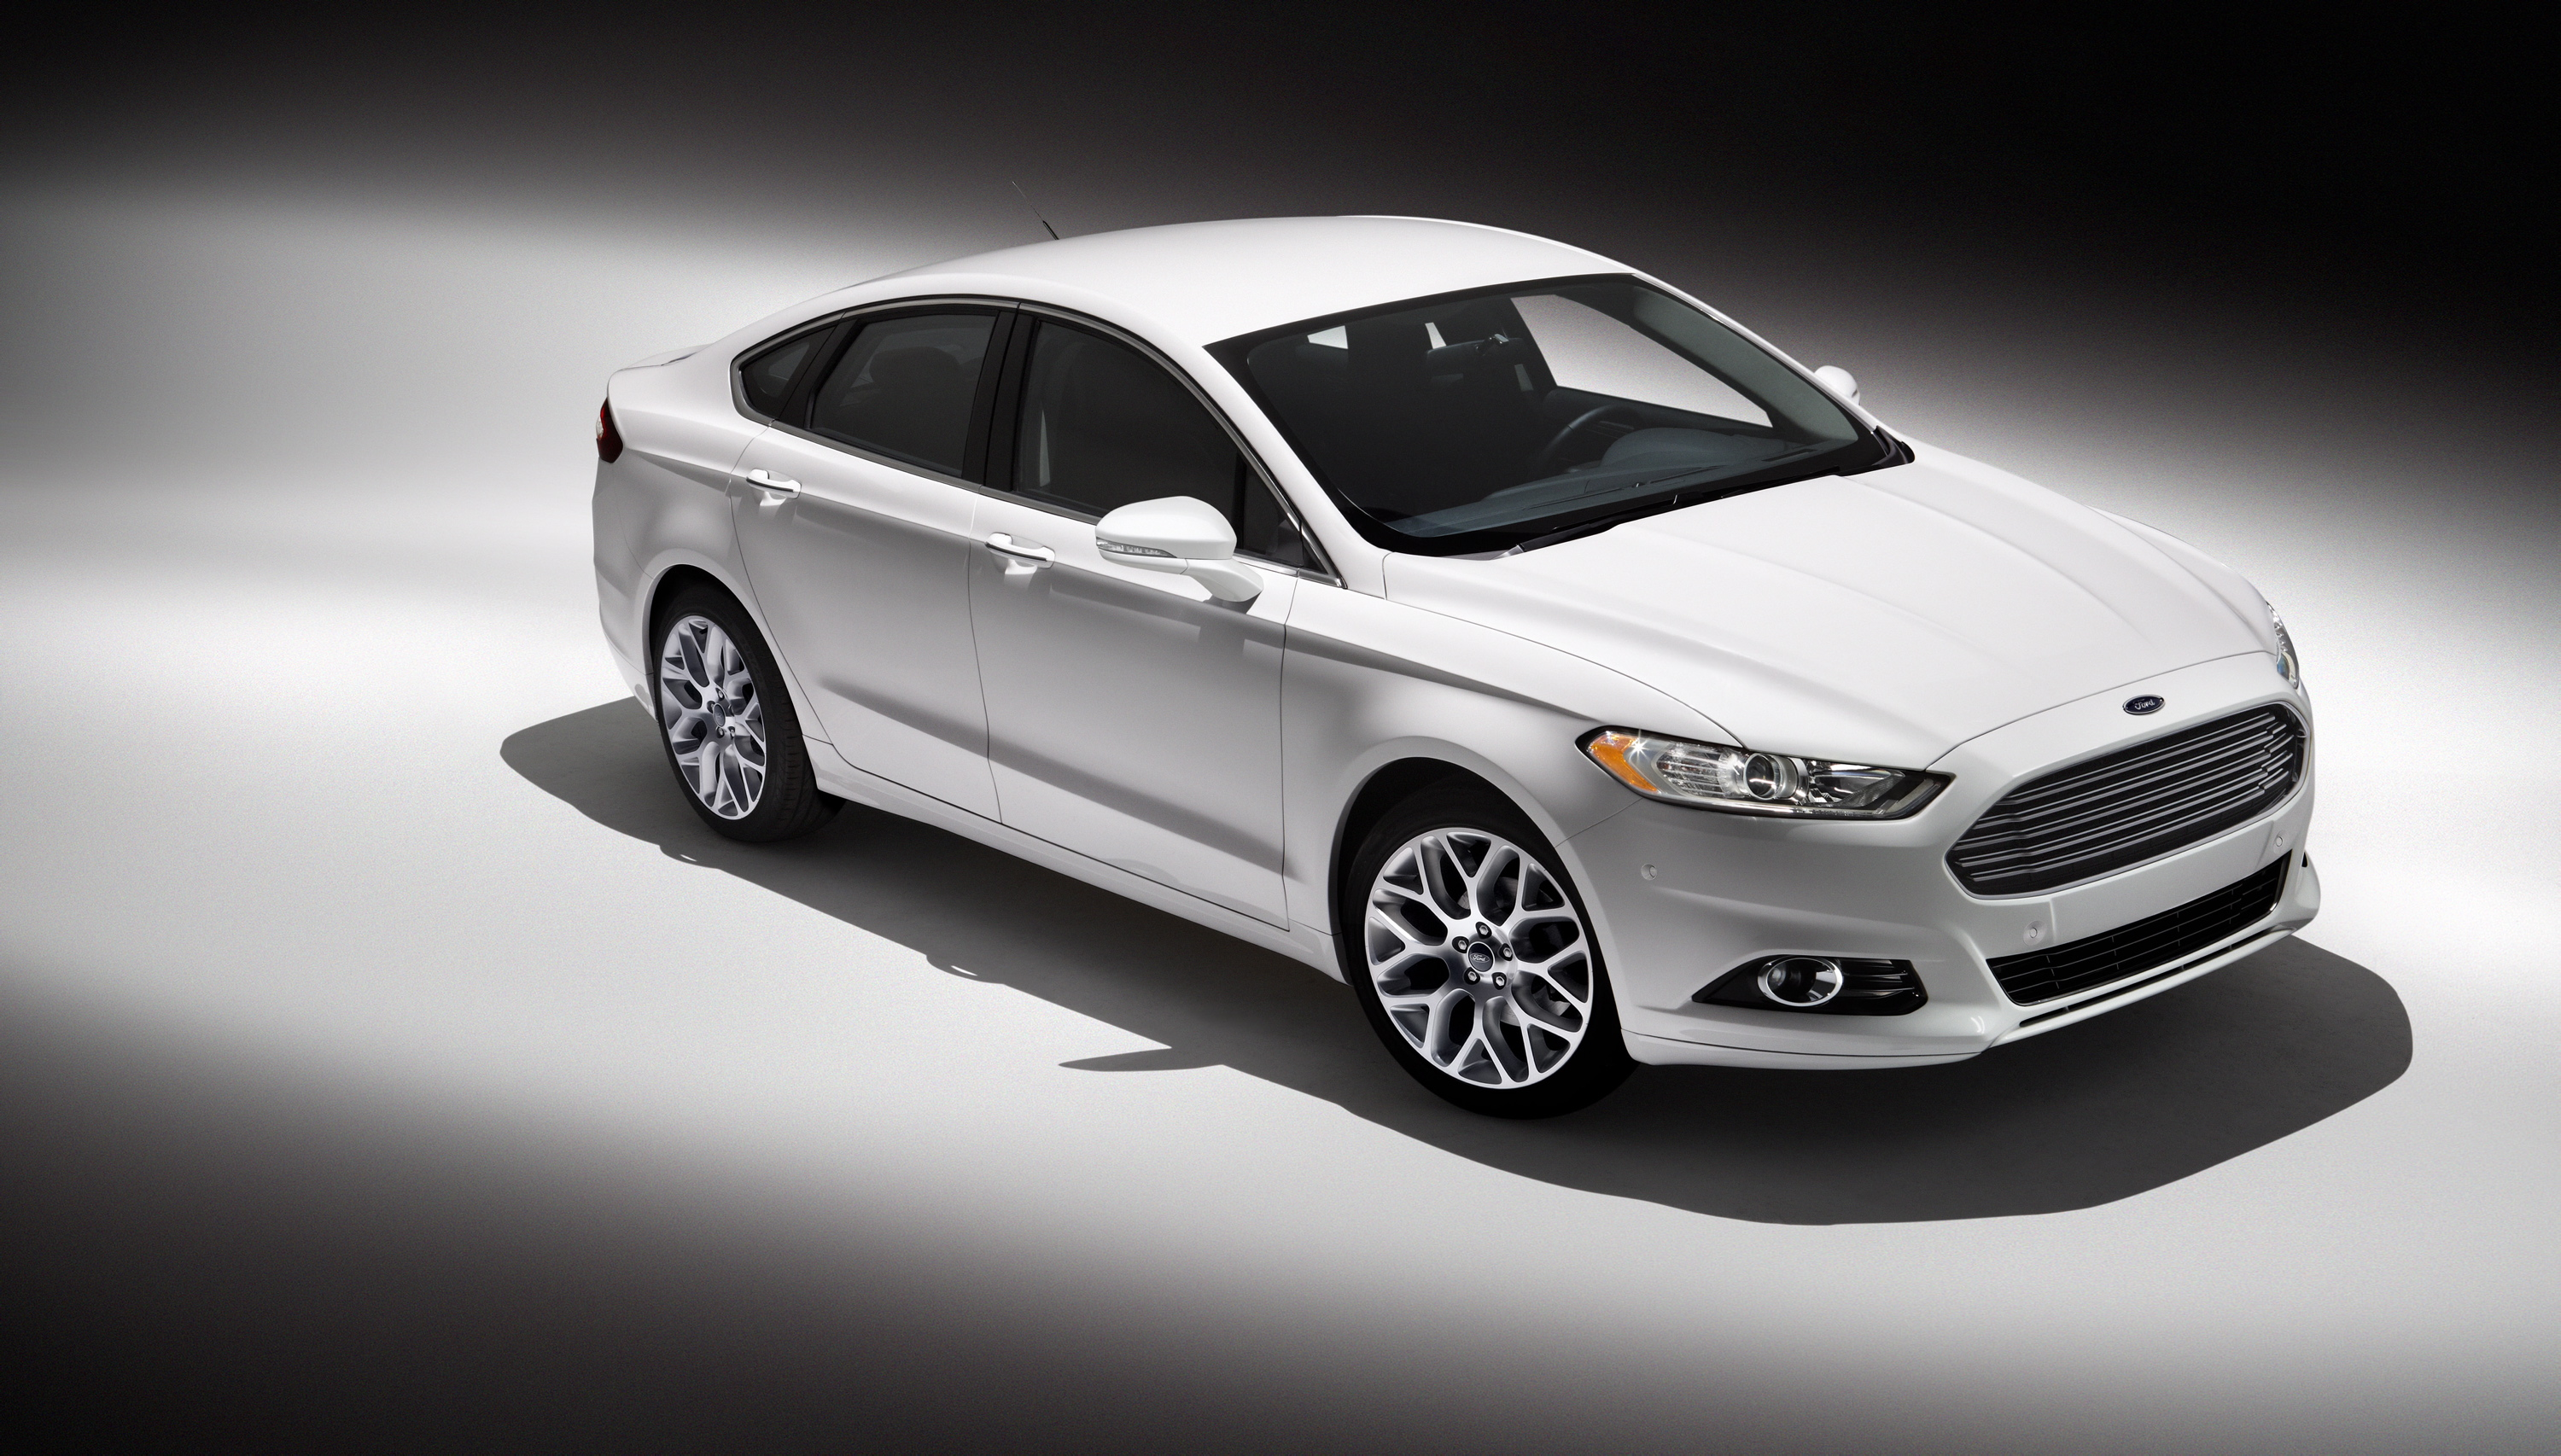 ford fusion usa pictures #6